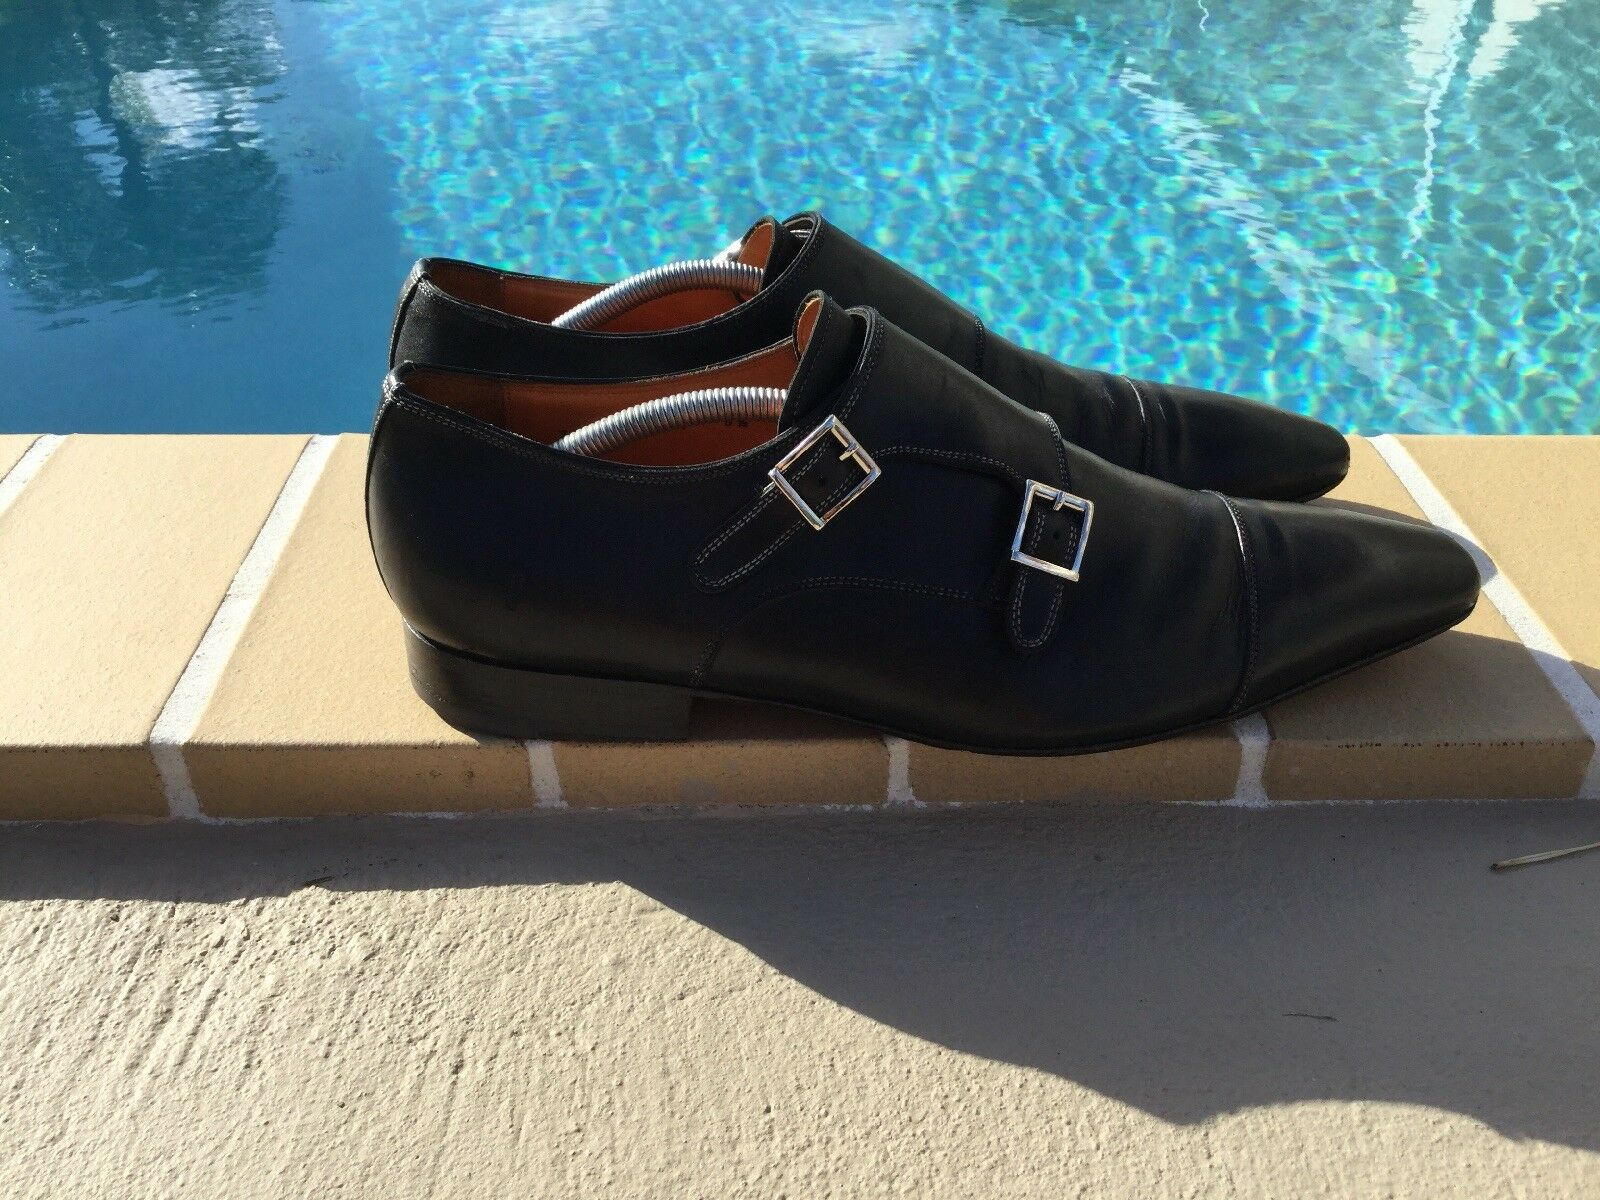 SANTONI BLACK LEATHER DOUBLE BUCKLE DETAIL LOAFERS Sz 9.5M MADE IN ITALY